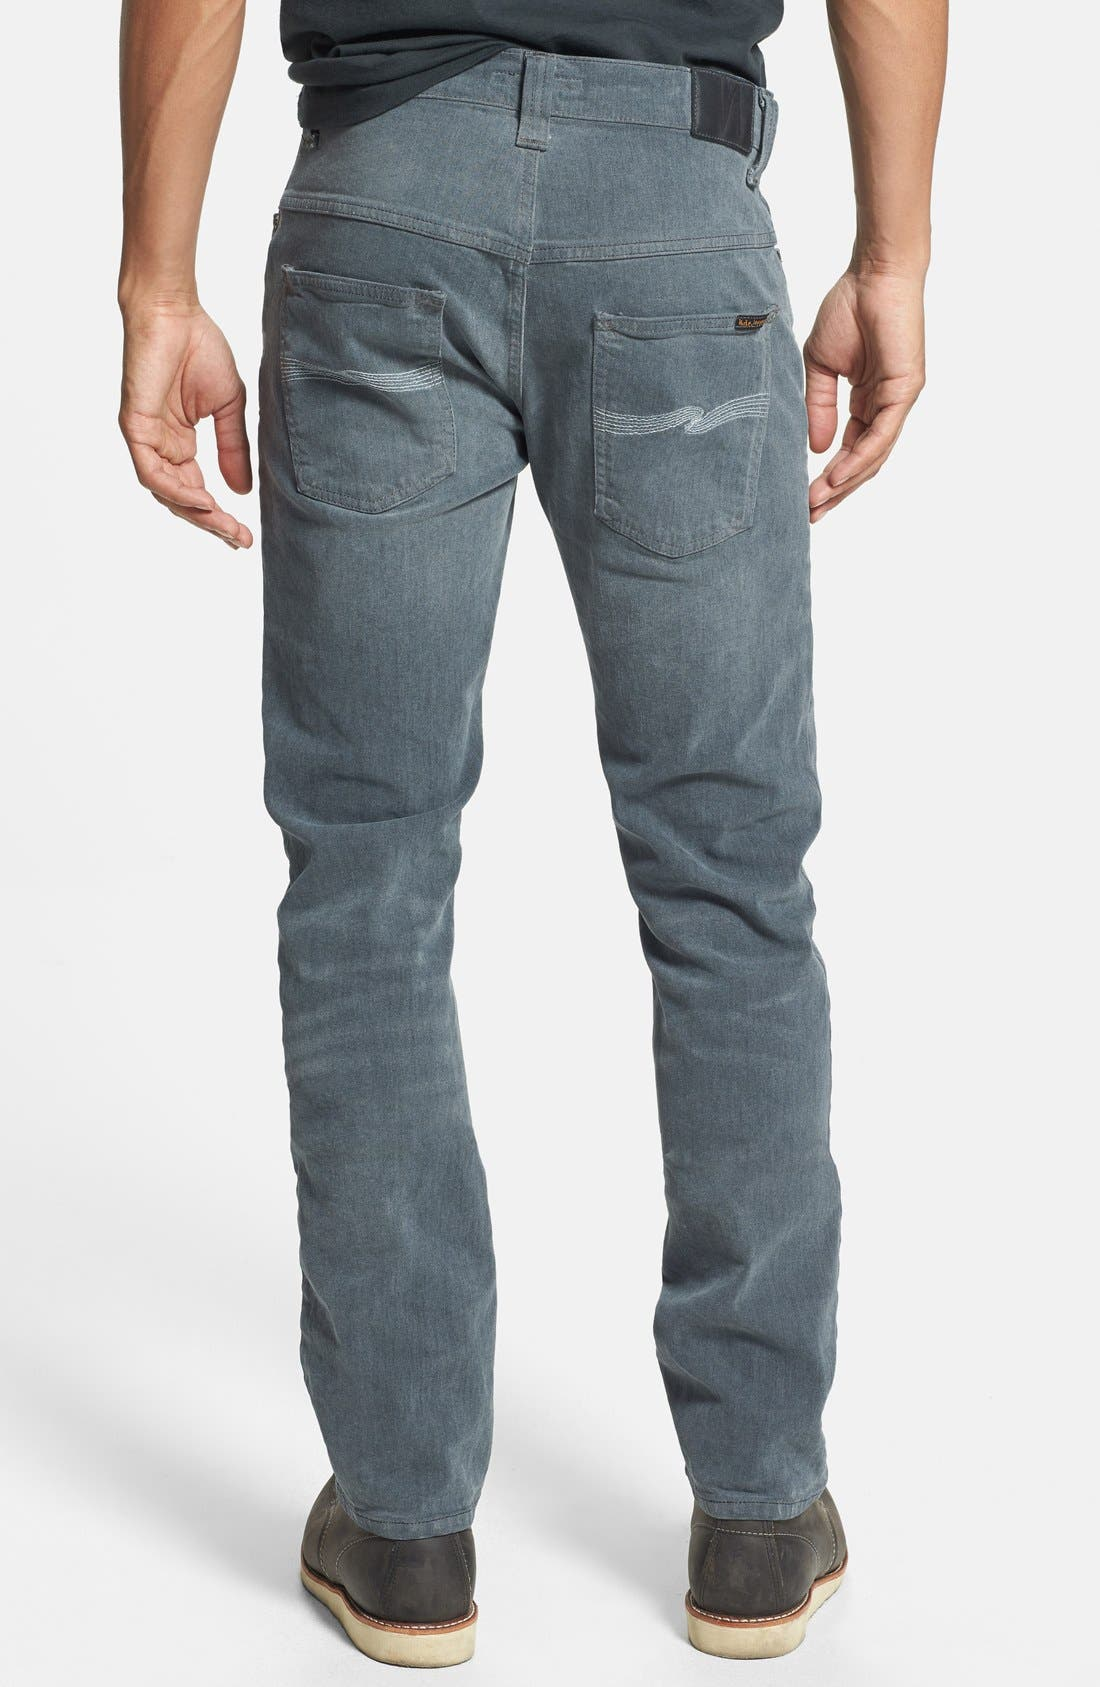 Alternate Image 2  - Nudie Jeans 'Thin Finn' Skinny Fit Jeans (Organic Lighter Shade)